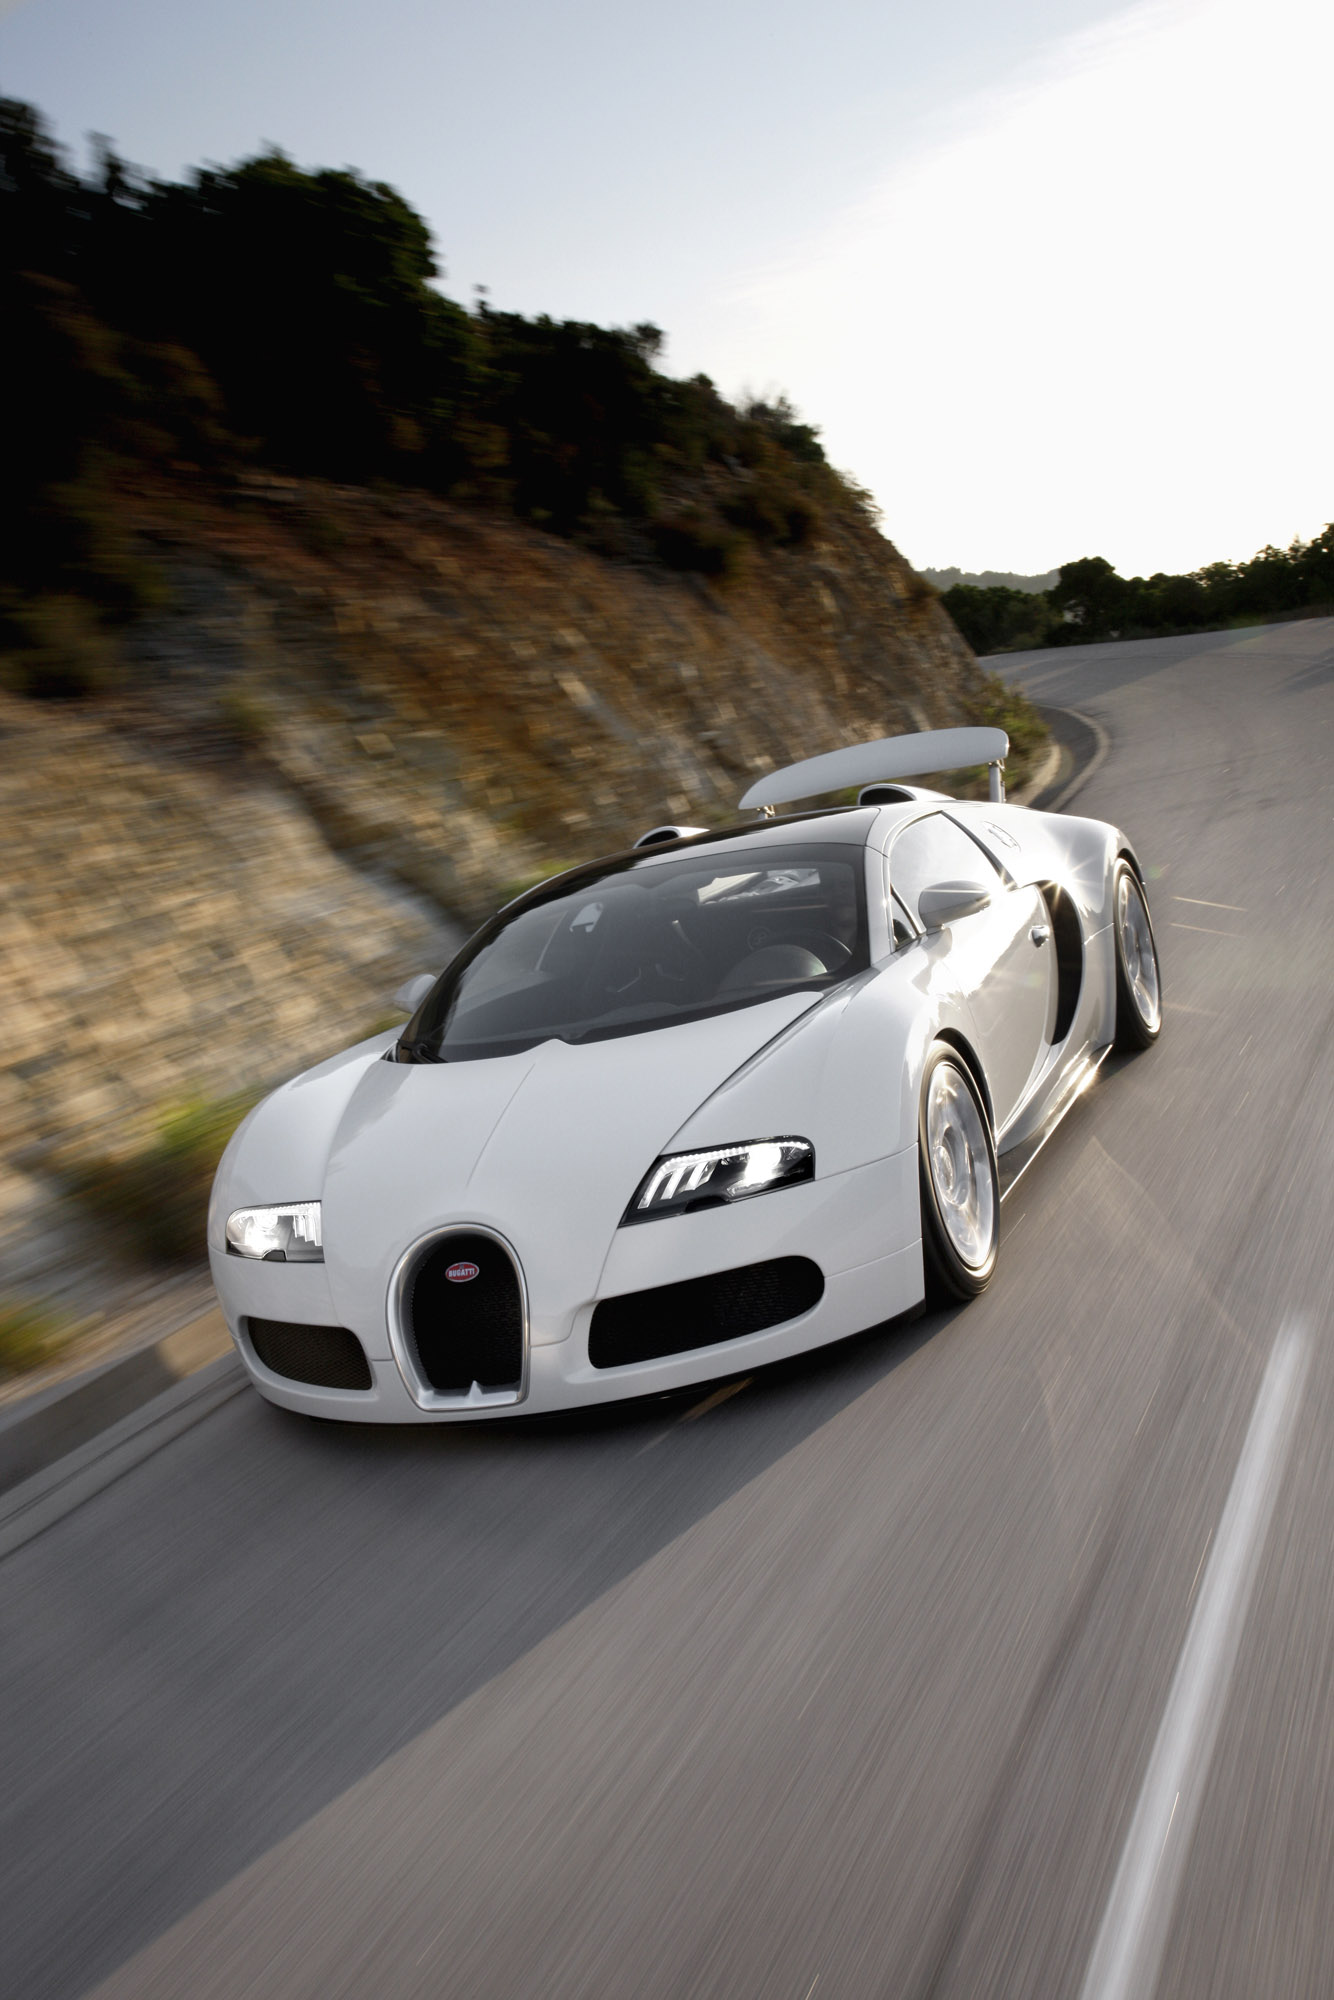 bugatti-veyron-164-grand-sport-32 Exciting Bugatti Veyron Cost for Oil Change Cars Trend